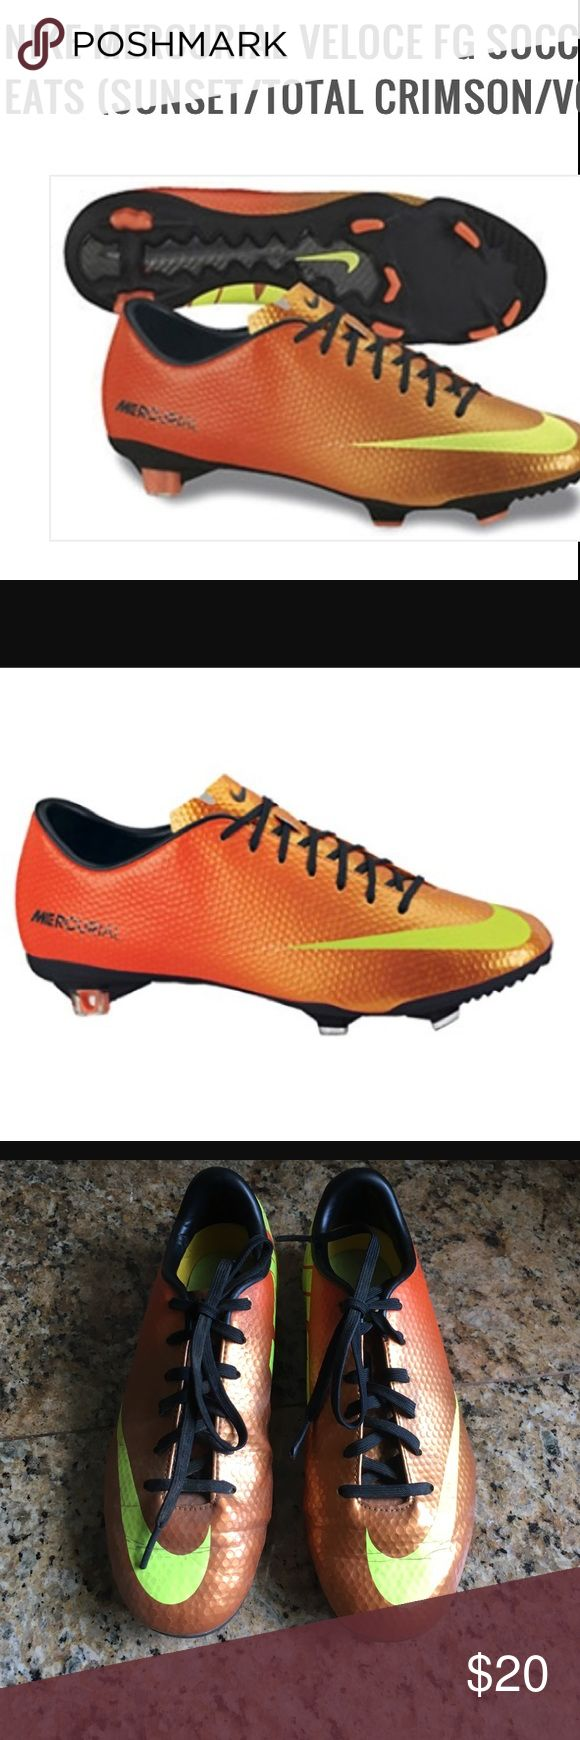 NIKE Mercurial youth cleats ⚽️ NIKE Mercurial boys youth cleats. Orange with yellow NIKE check and logo. Size 2.5 youth. Good used condition. ⚽️ Nike Shoes Sneakers